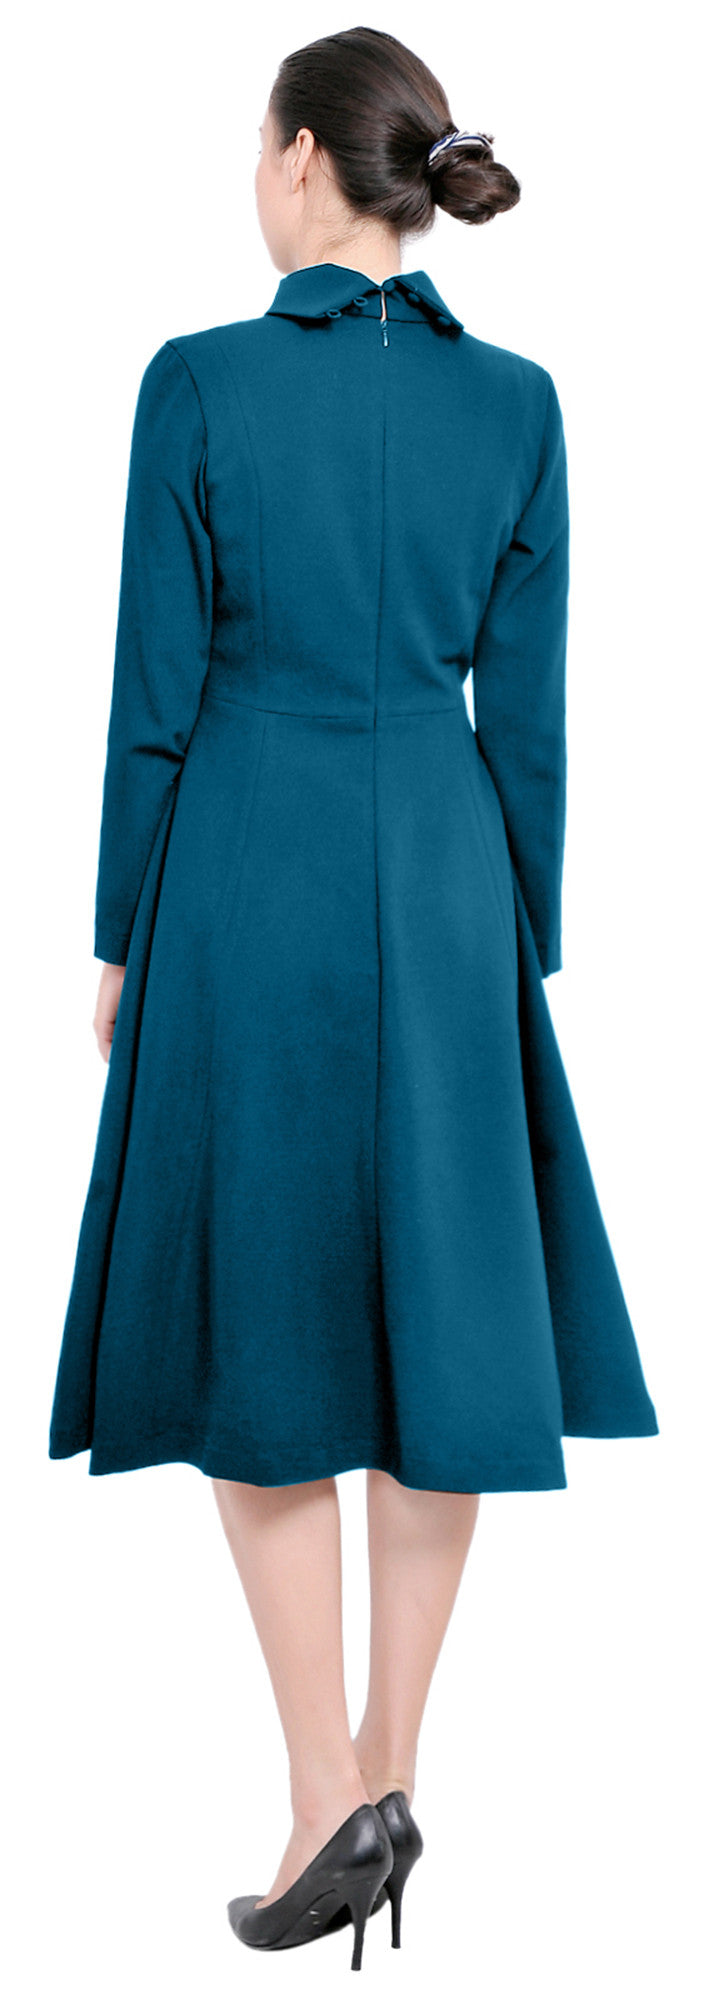 Winter High Neck Long Sleeve A Line Flared Midi Dresses